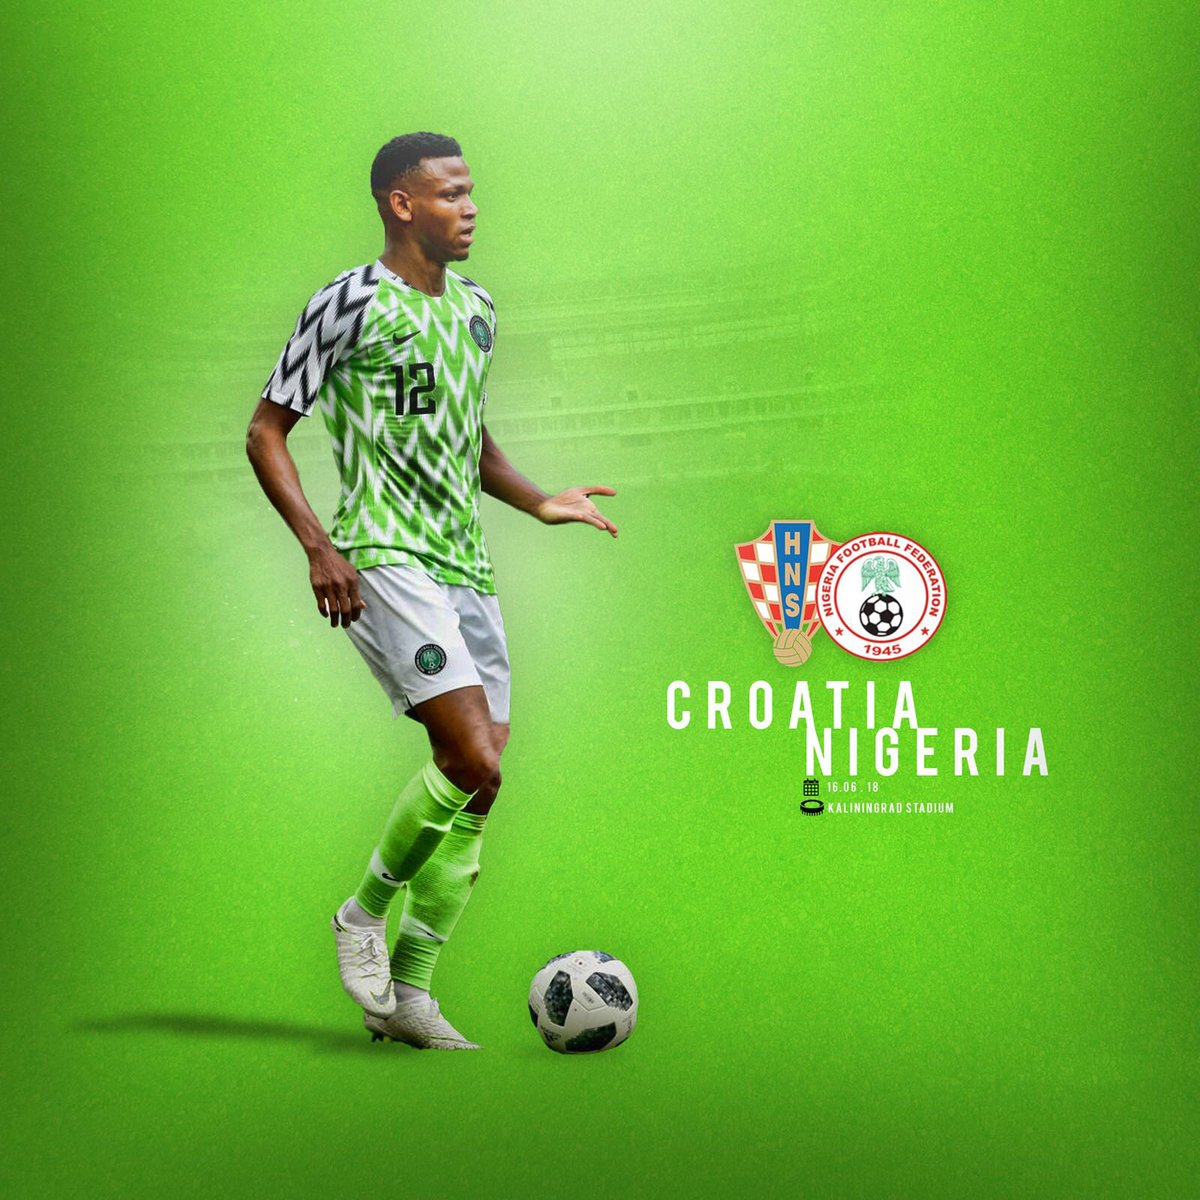 For Naija... 🇳🇬 Let's go! #Worldcup2018